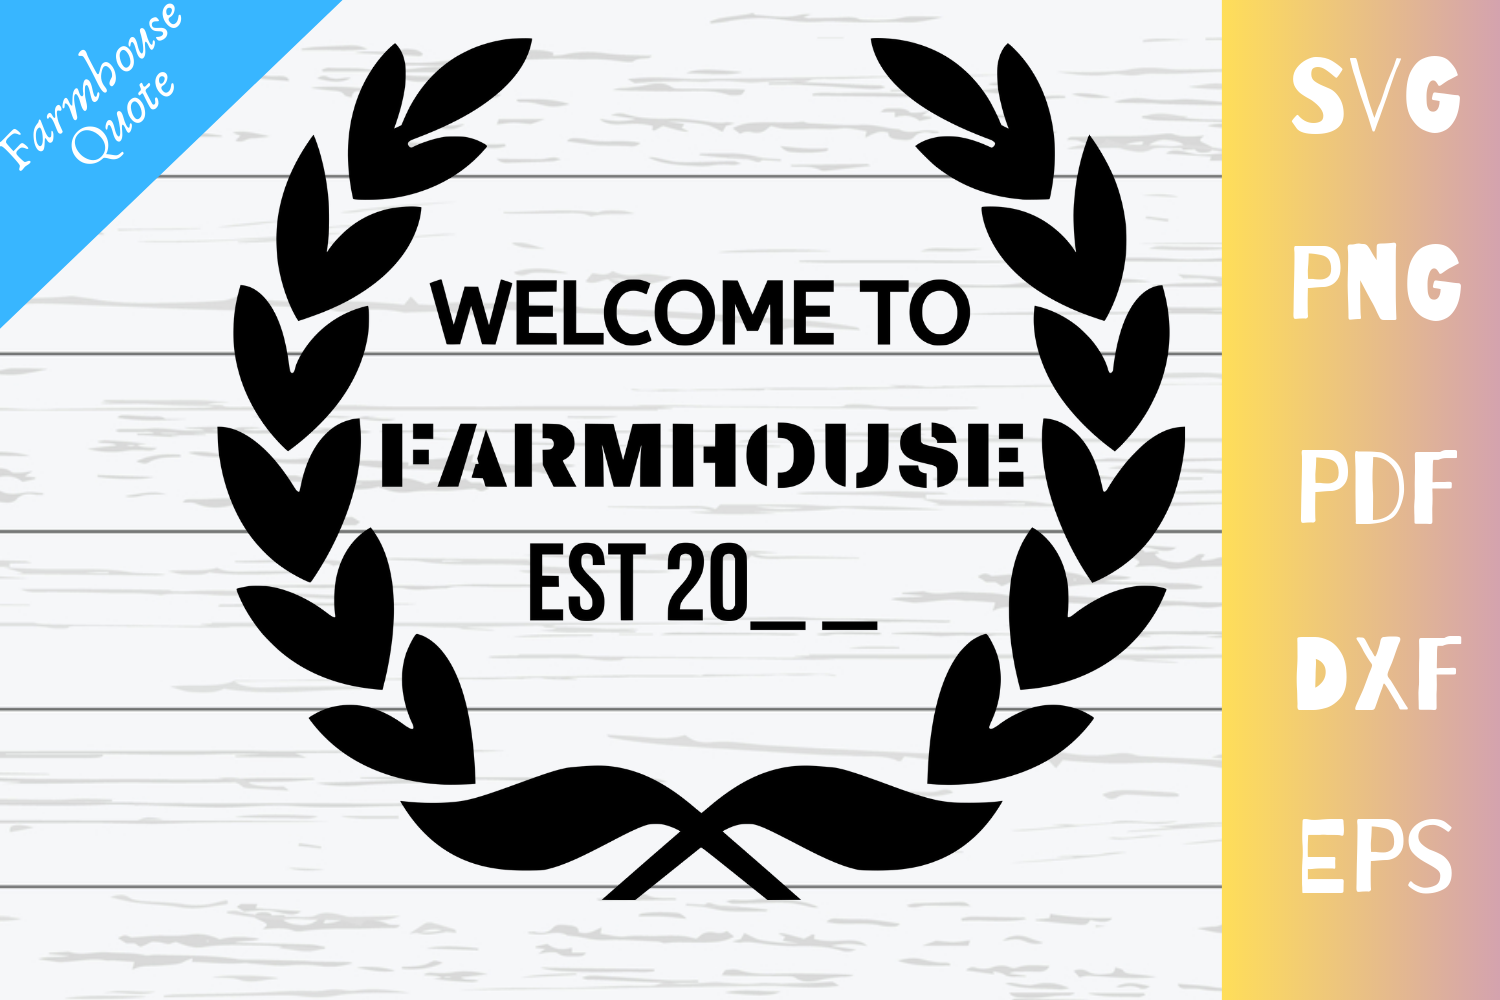 Welcome To Farmhouse EST 20__ Sign Quote|SVG|PNG|PDF|DXF|EPS example image 1